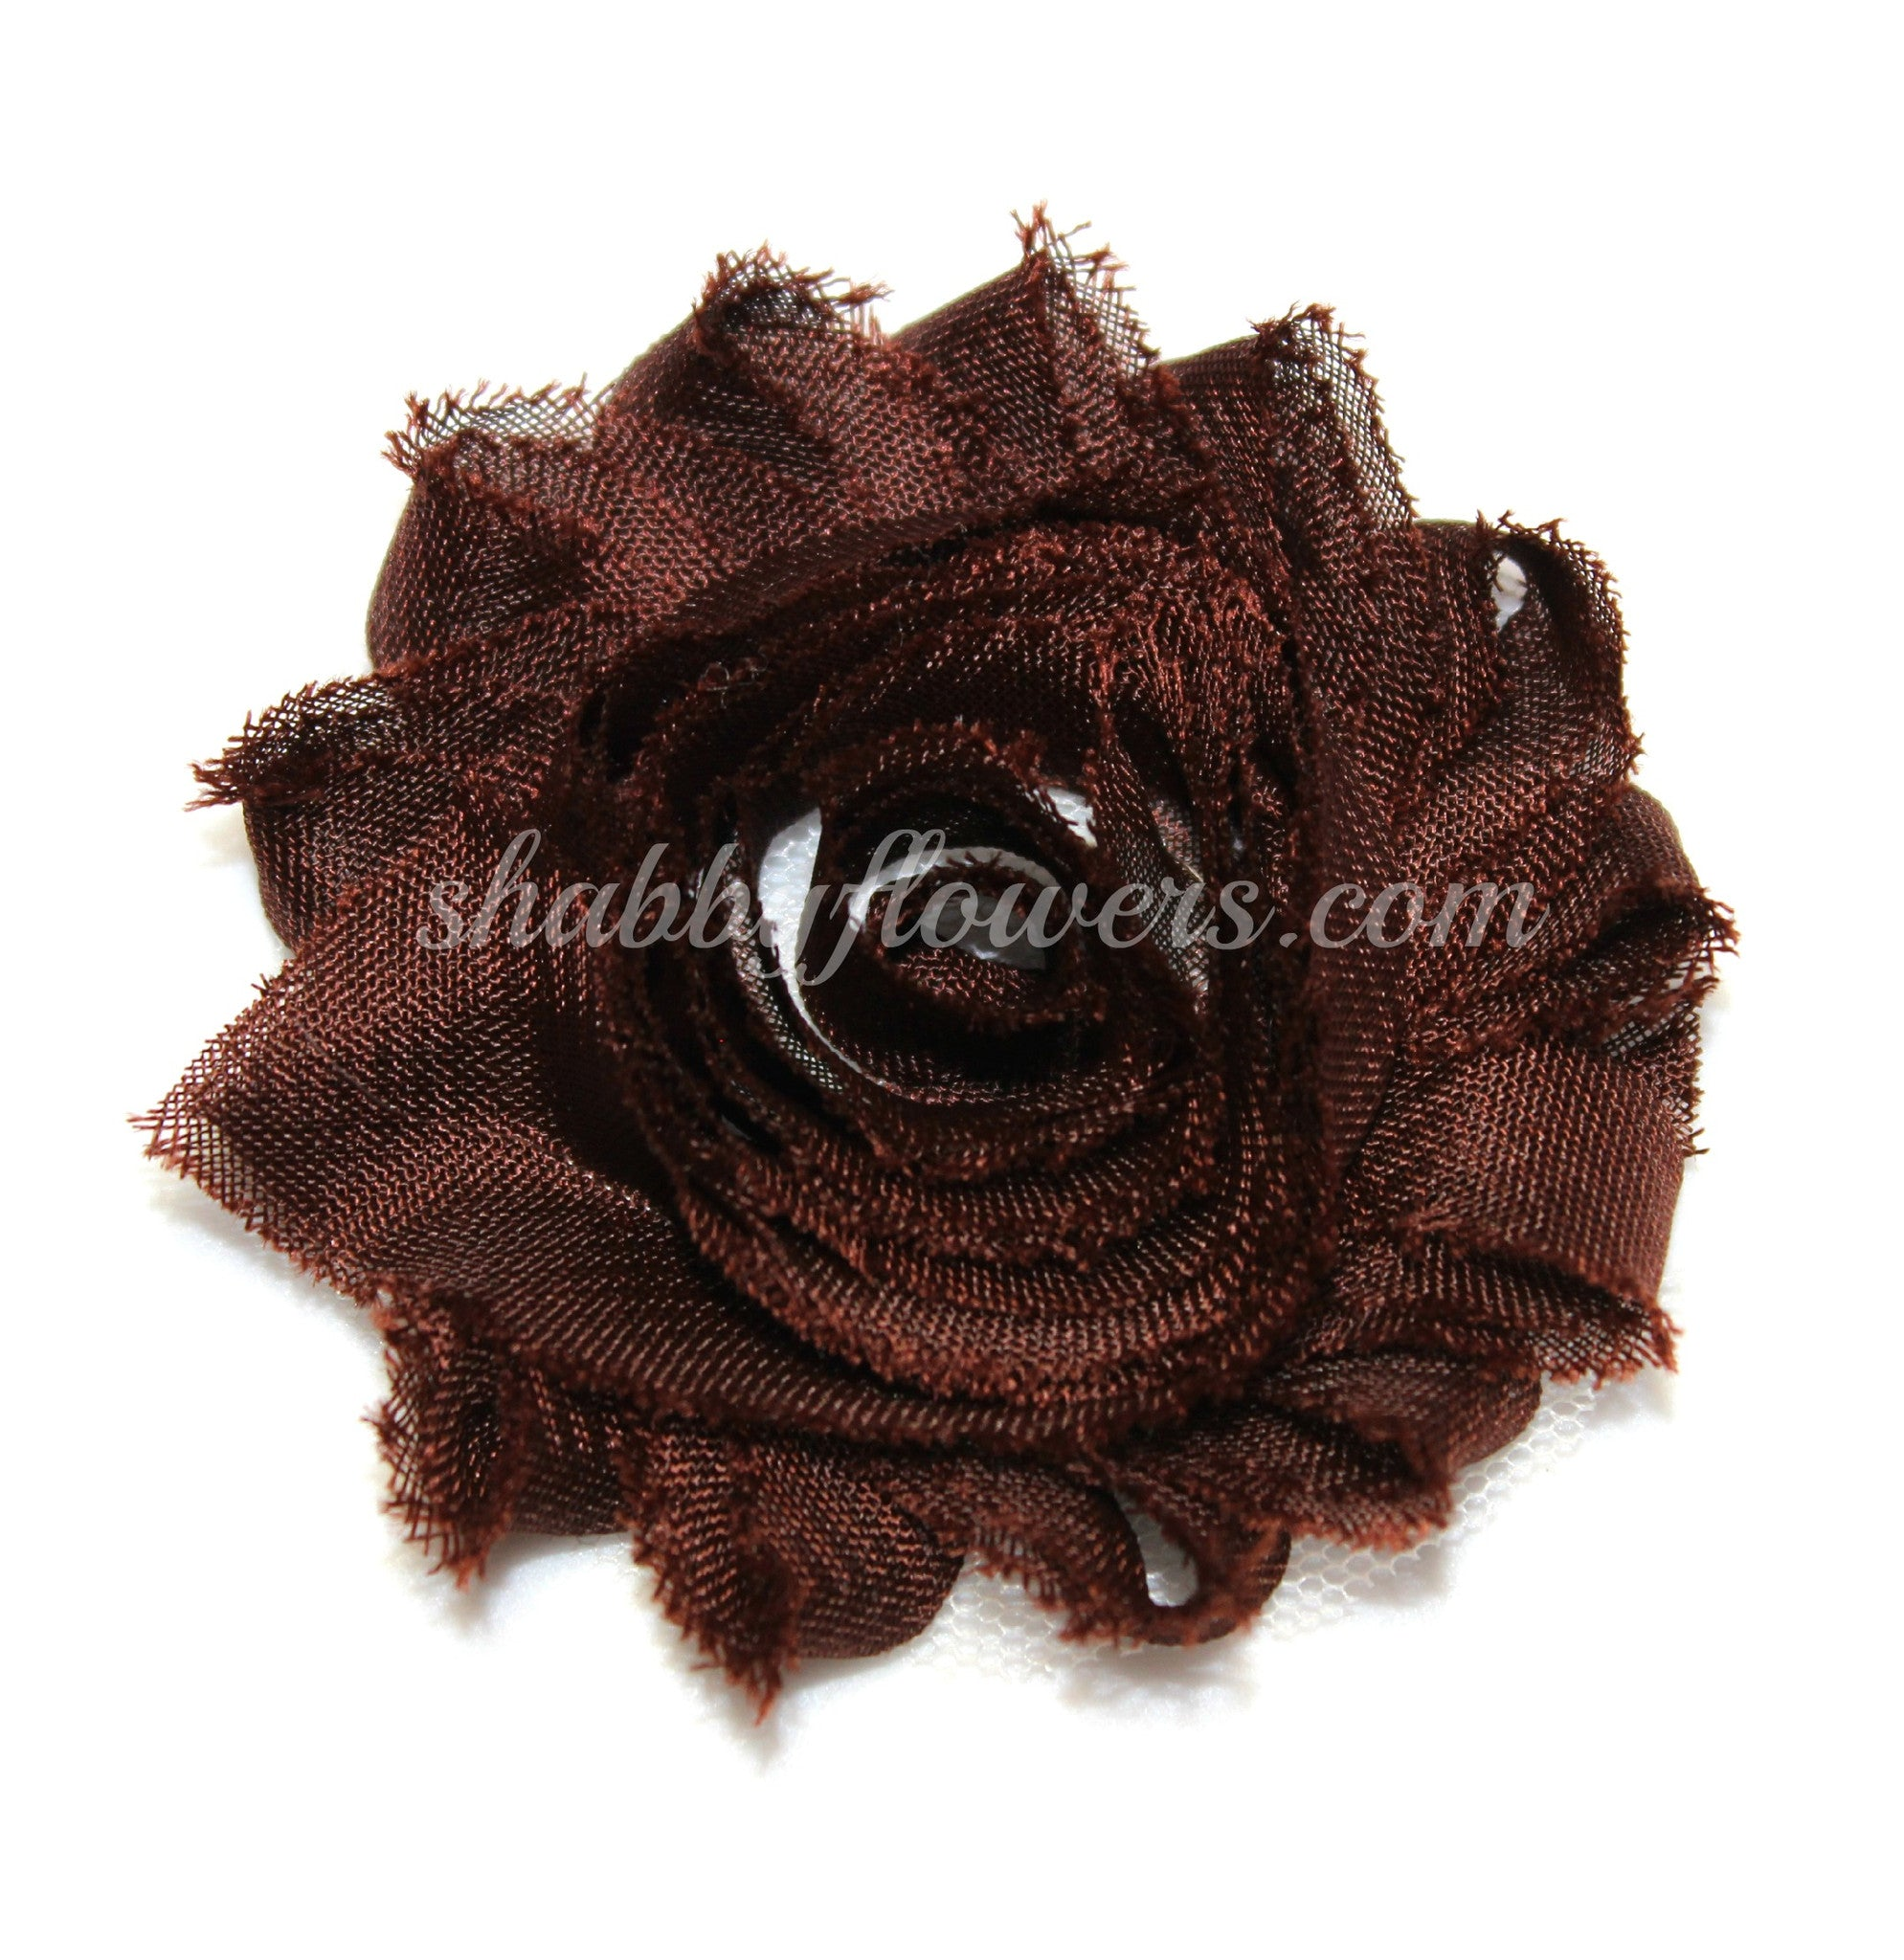 Shabby Chiffon Flower - Brown - shabbyflowers.com